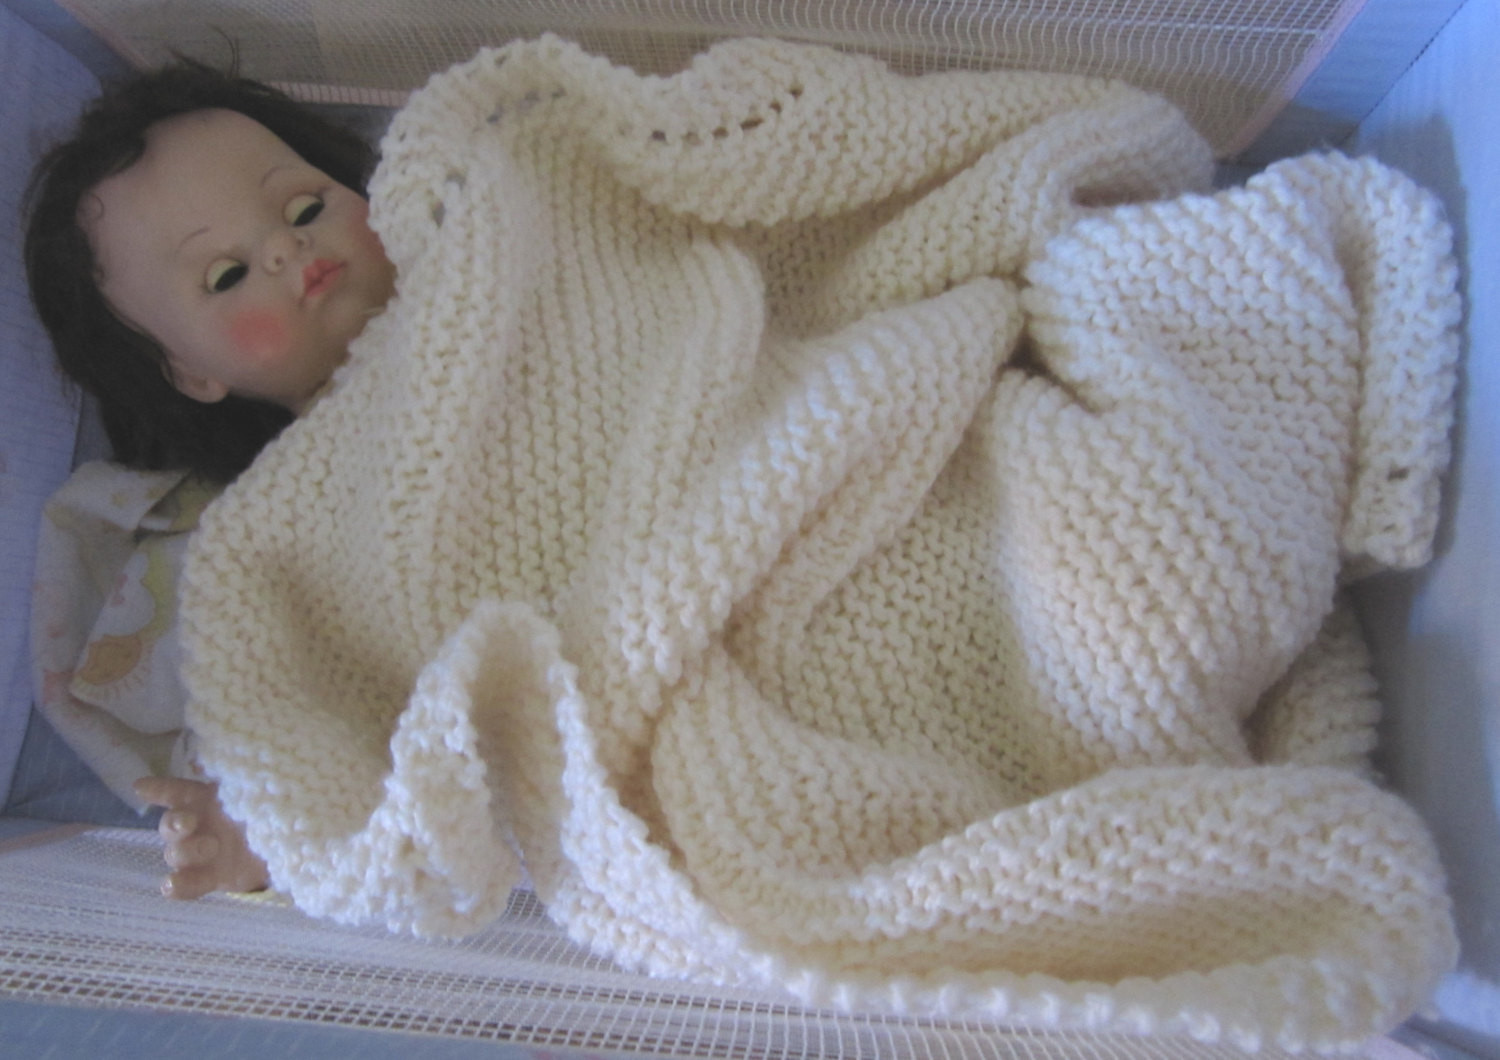 Chunky Knit Baby Blanket Best Of Knit Baby Blanket Chunky Yarn Acrylic Aran Color Of Gorgeous 41 Pictures Chunky Knit Baby Blanket